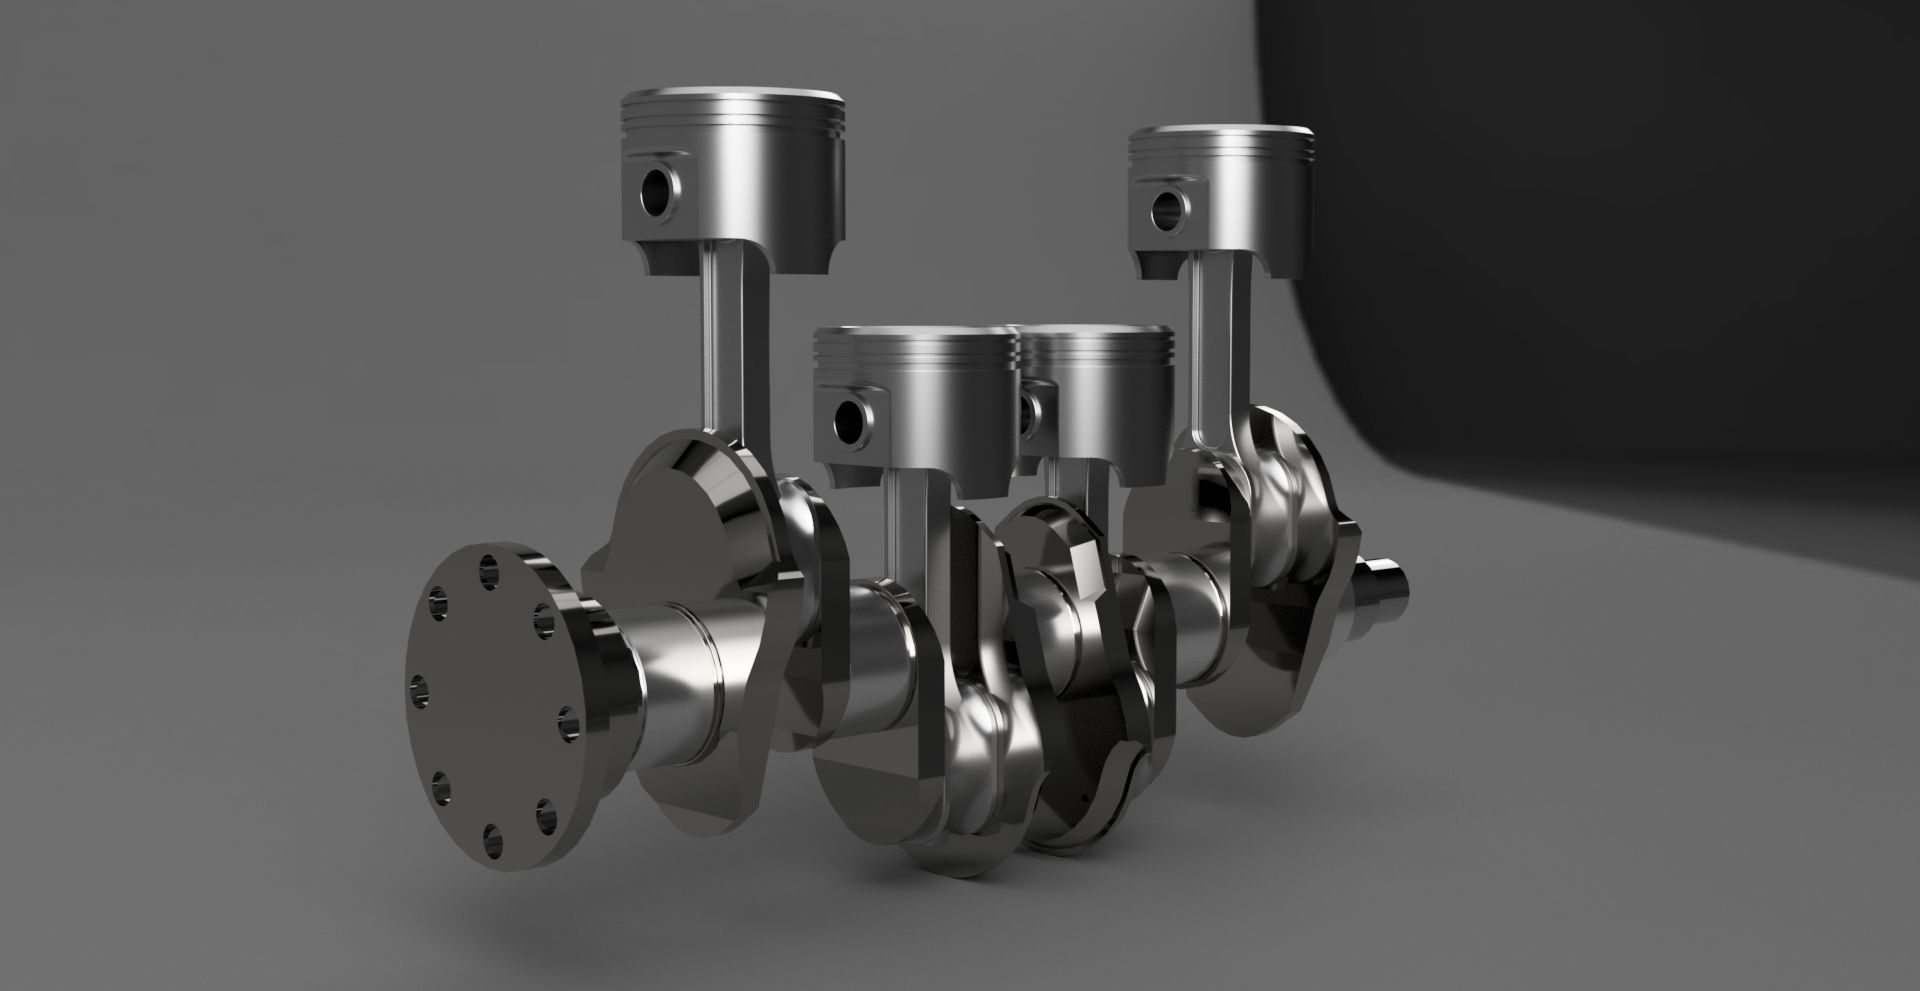 Engine-model-v12-4-rendered-3500-3500